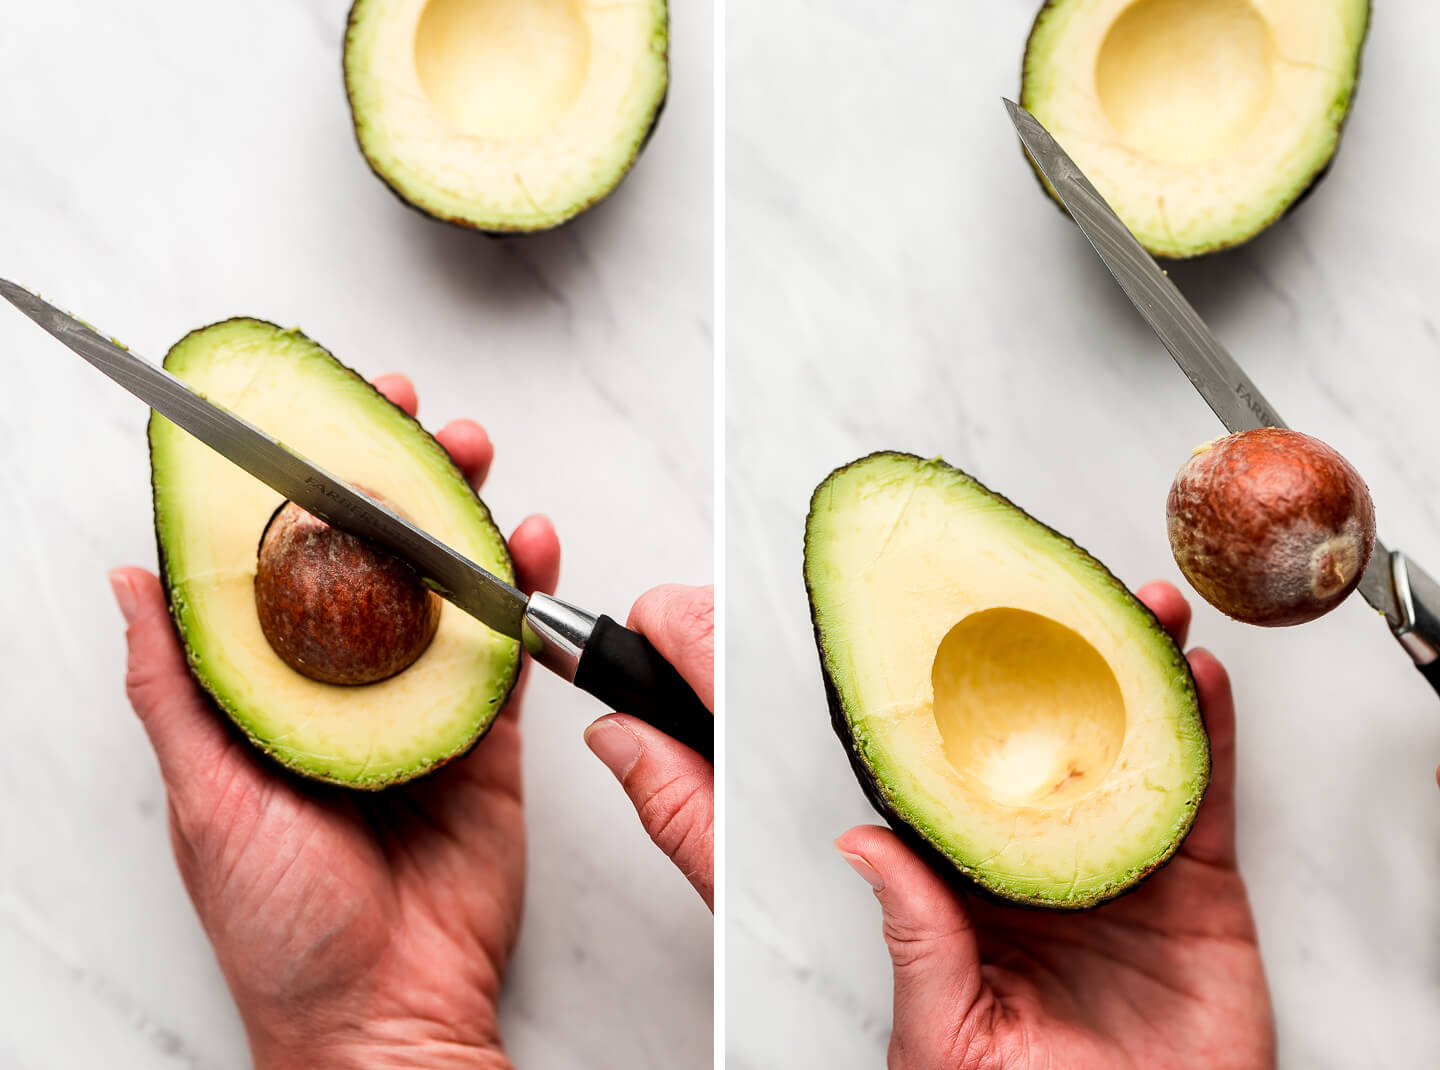 A hand holding half an avocado and a knife pressed into the pit lifting it out.